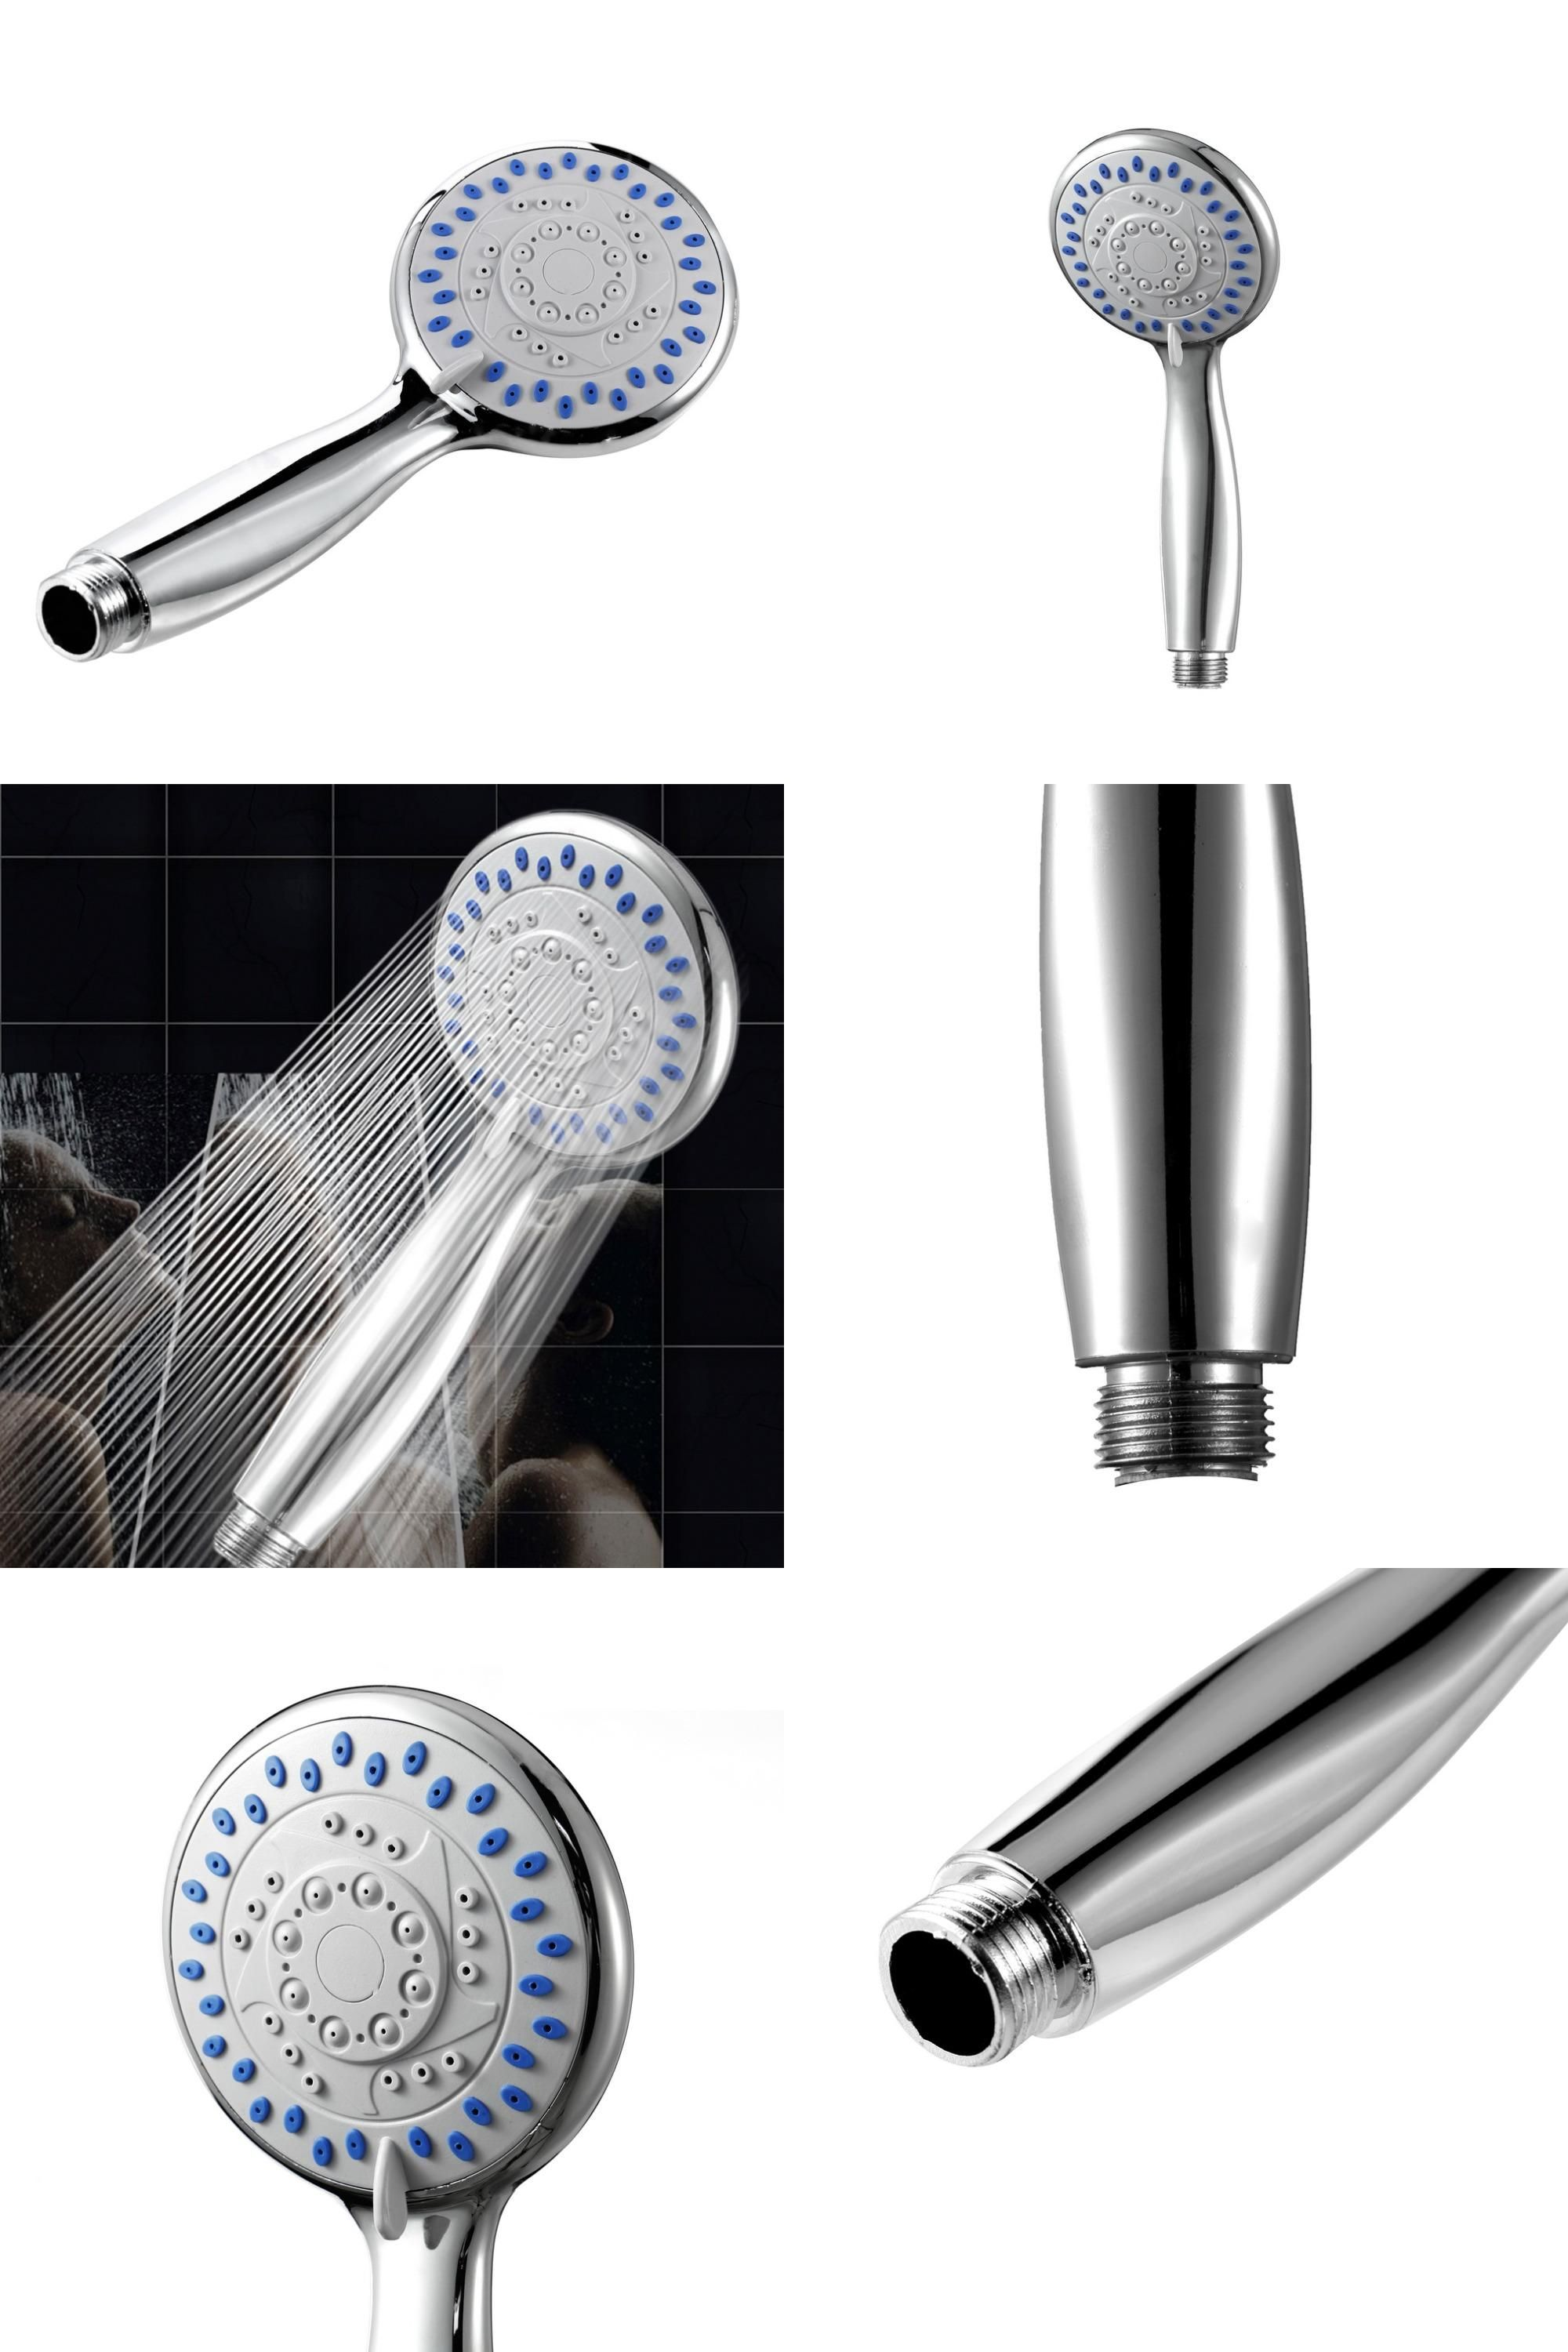 Visit to Buy] Large 5- Mode Function Chrome Bath Shower Head Handset ...